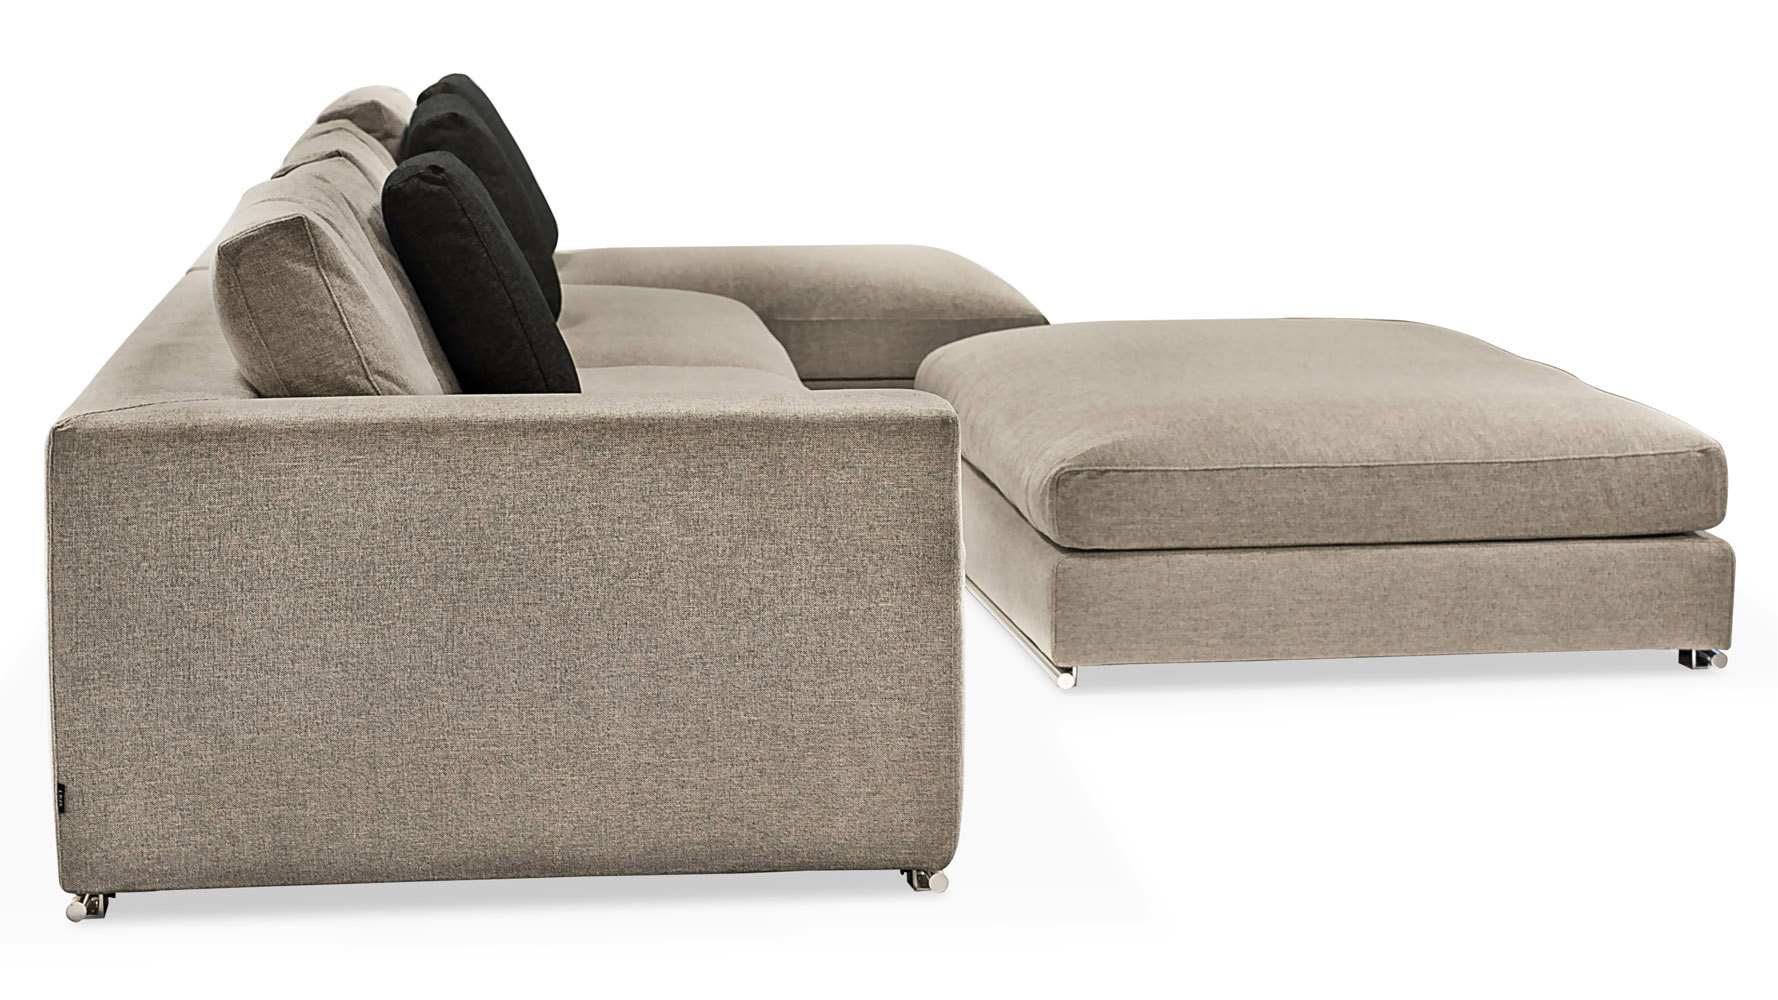 Comodo Sectional Sofa With Ottoman Grey Zuri Furniture ~ One Arm Sofa With Chaise